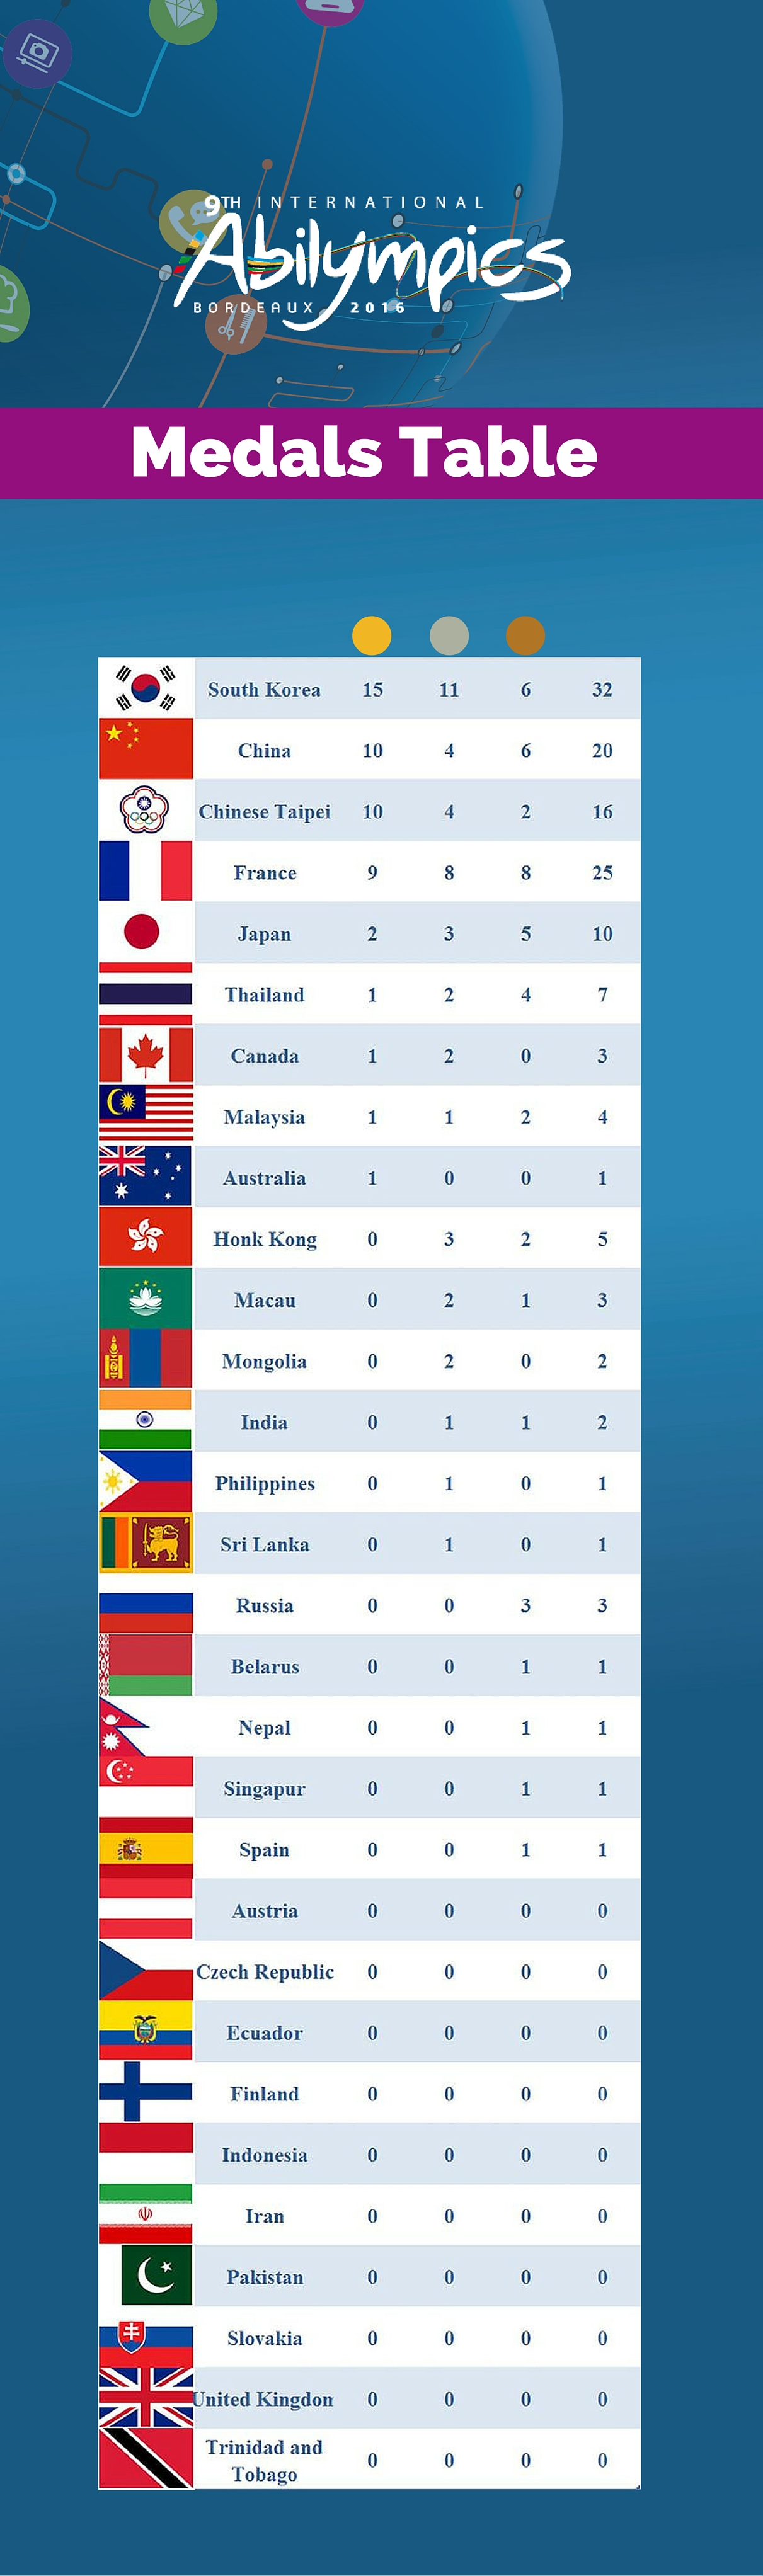 Medals-Table-Final